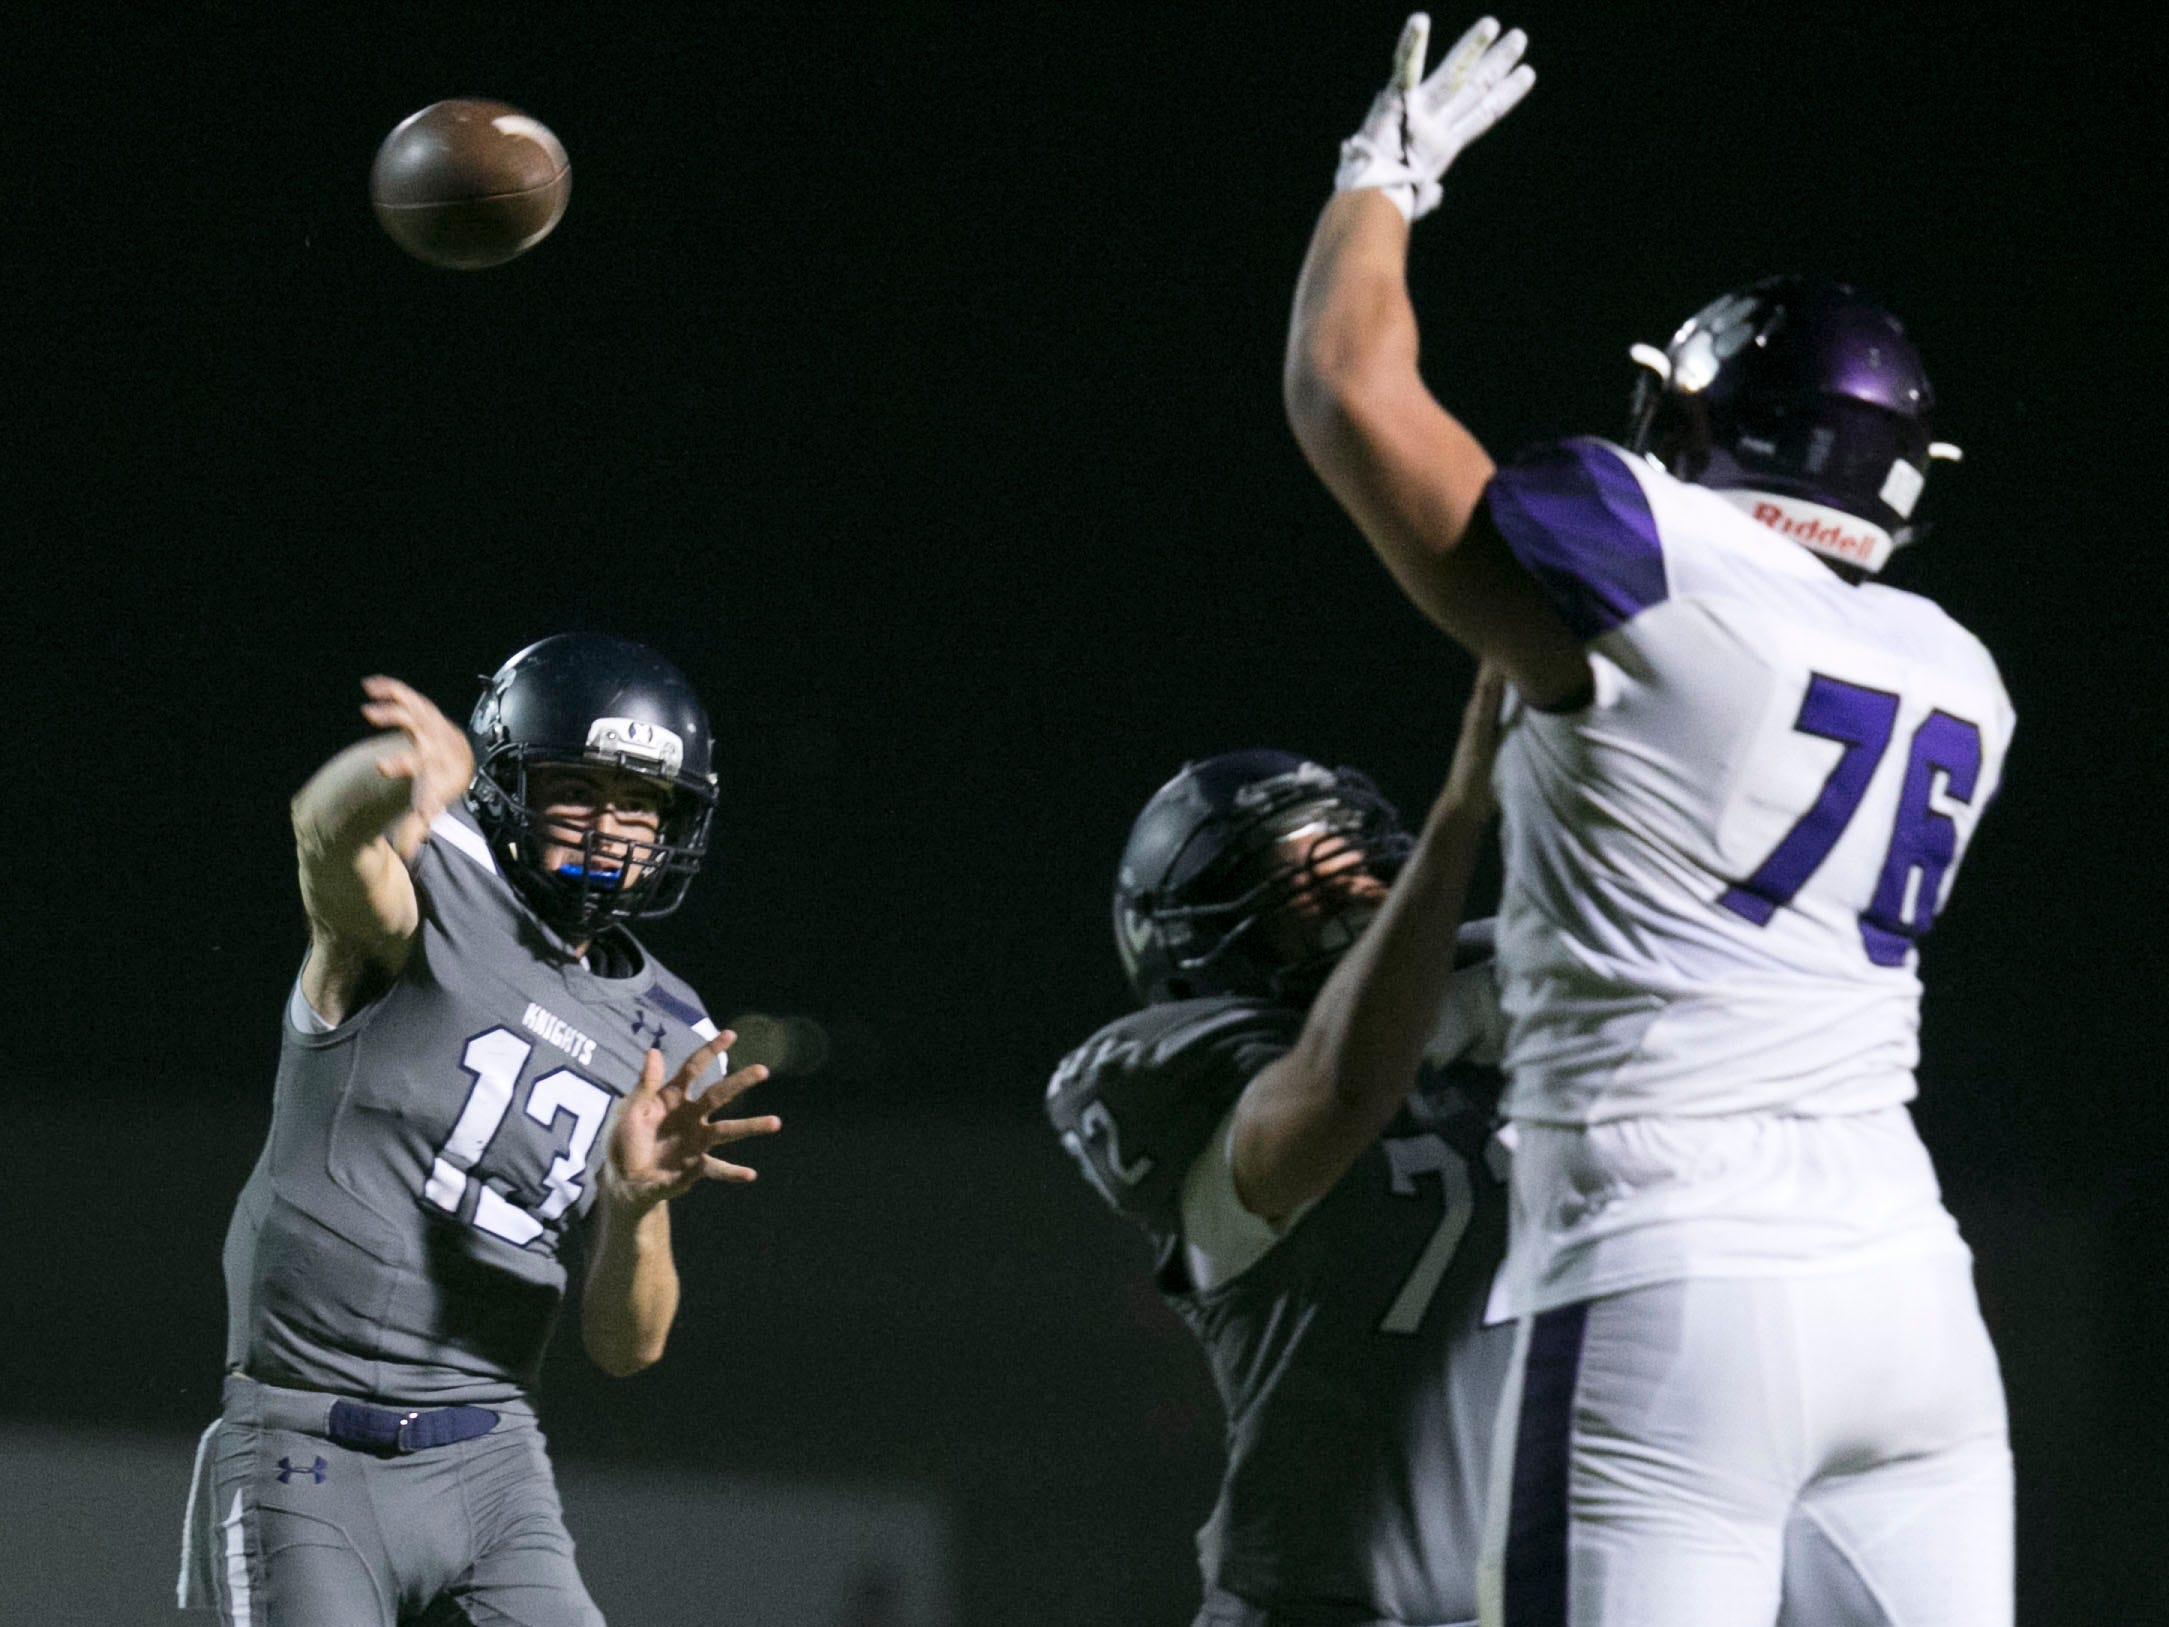 Higley High quarterback Spencer Brasch passes as Millennium High defensive lineman Anthonie Cooper attempts to block the pass during the third quarter of the high school football game at Higley High in Gilbert on Friday evening, September 14, 2018.